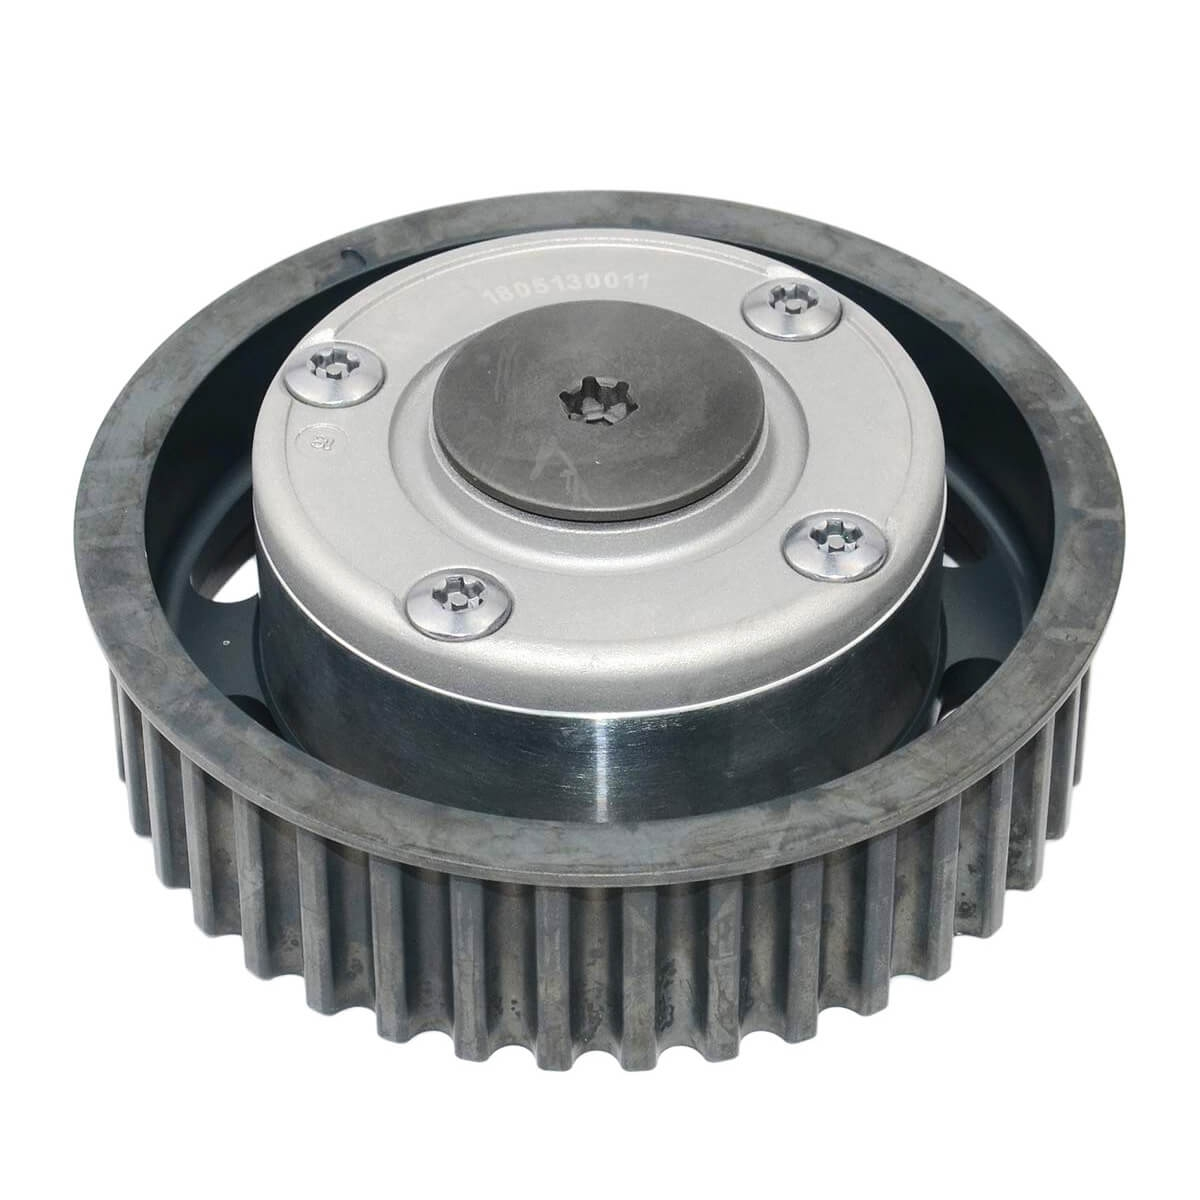 AUDI S8 Cam Dephaser Pulley